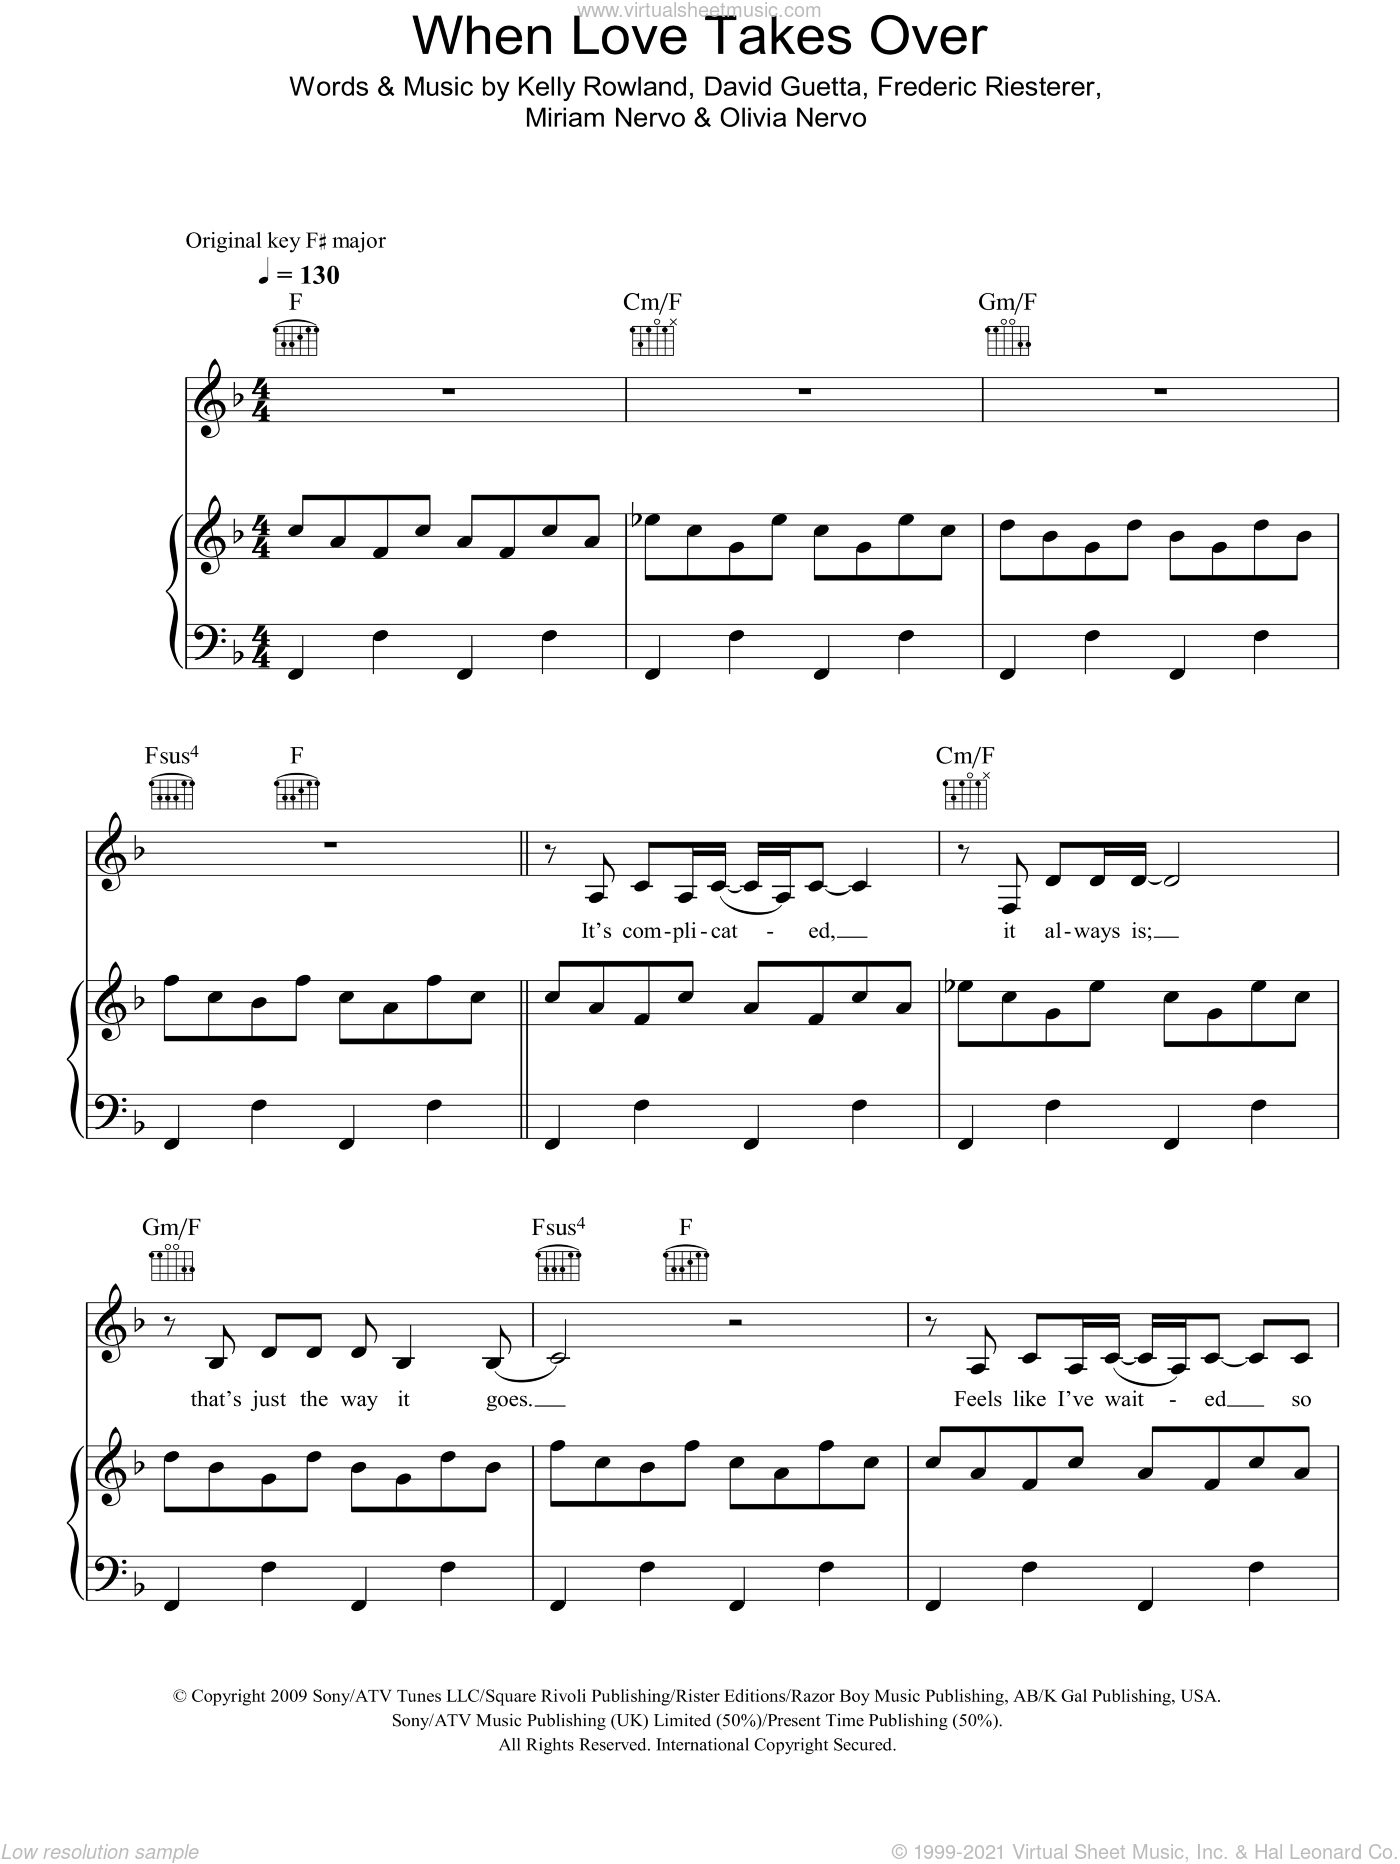 When Love Takes Over sheet music for voice, piano or guitar by Olivia Nervo, David Guetta, Frederic Riesterer and Kelly Rowland. Score Image Preview.